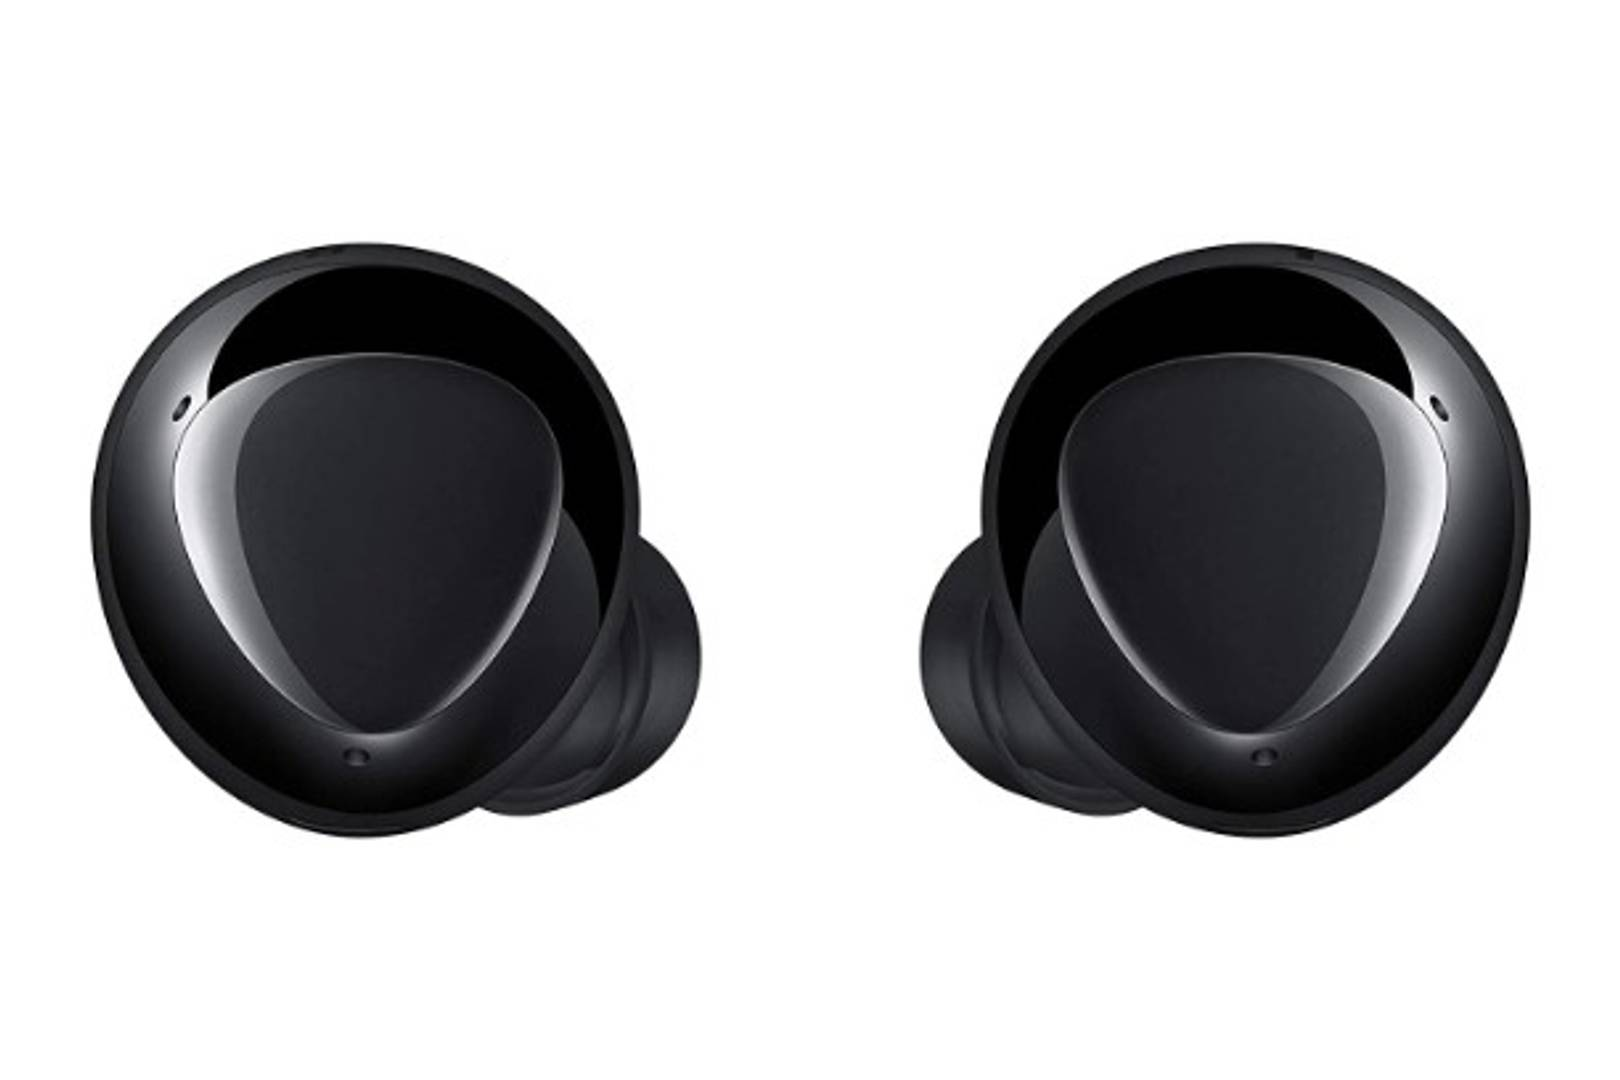 Premium Black Color Earbuds